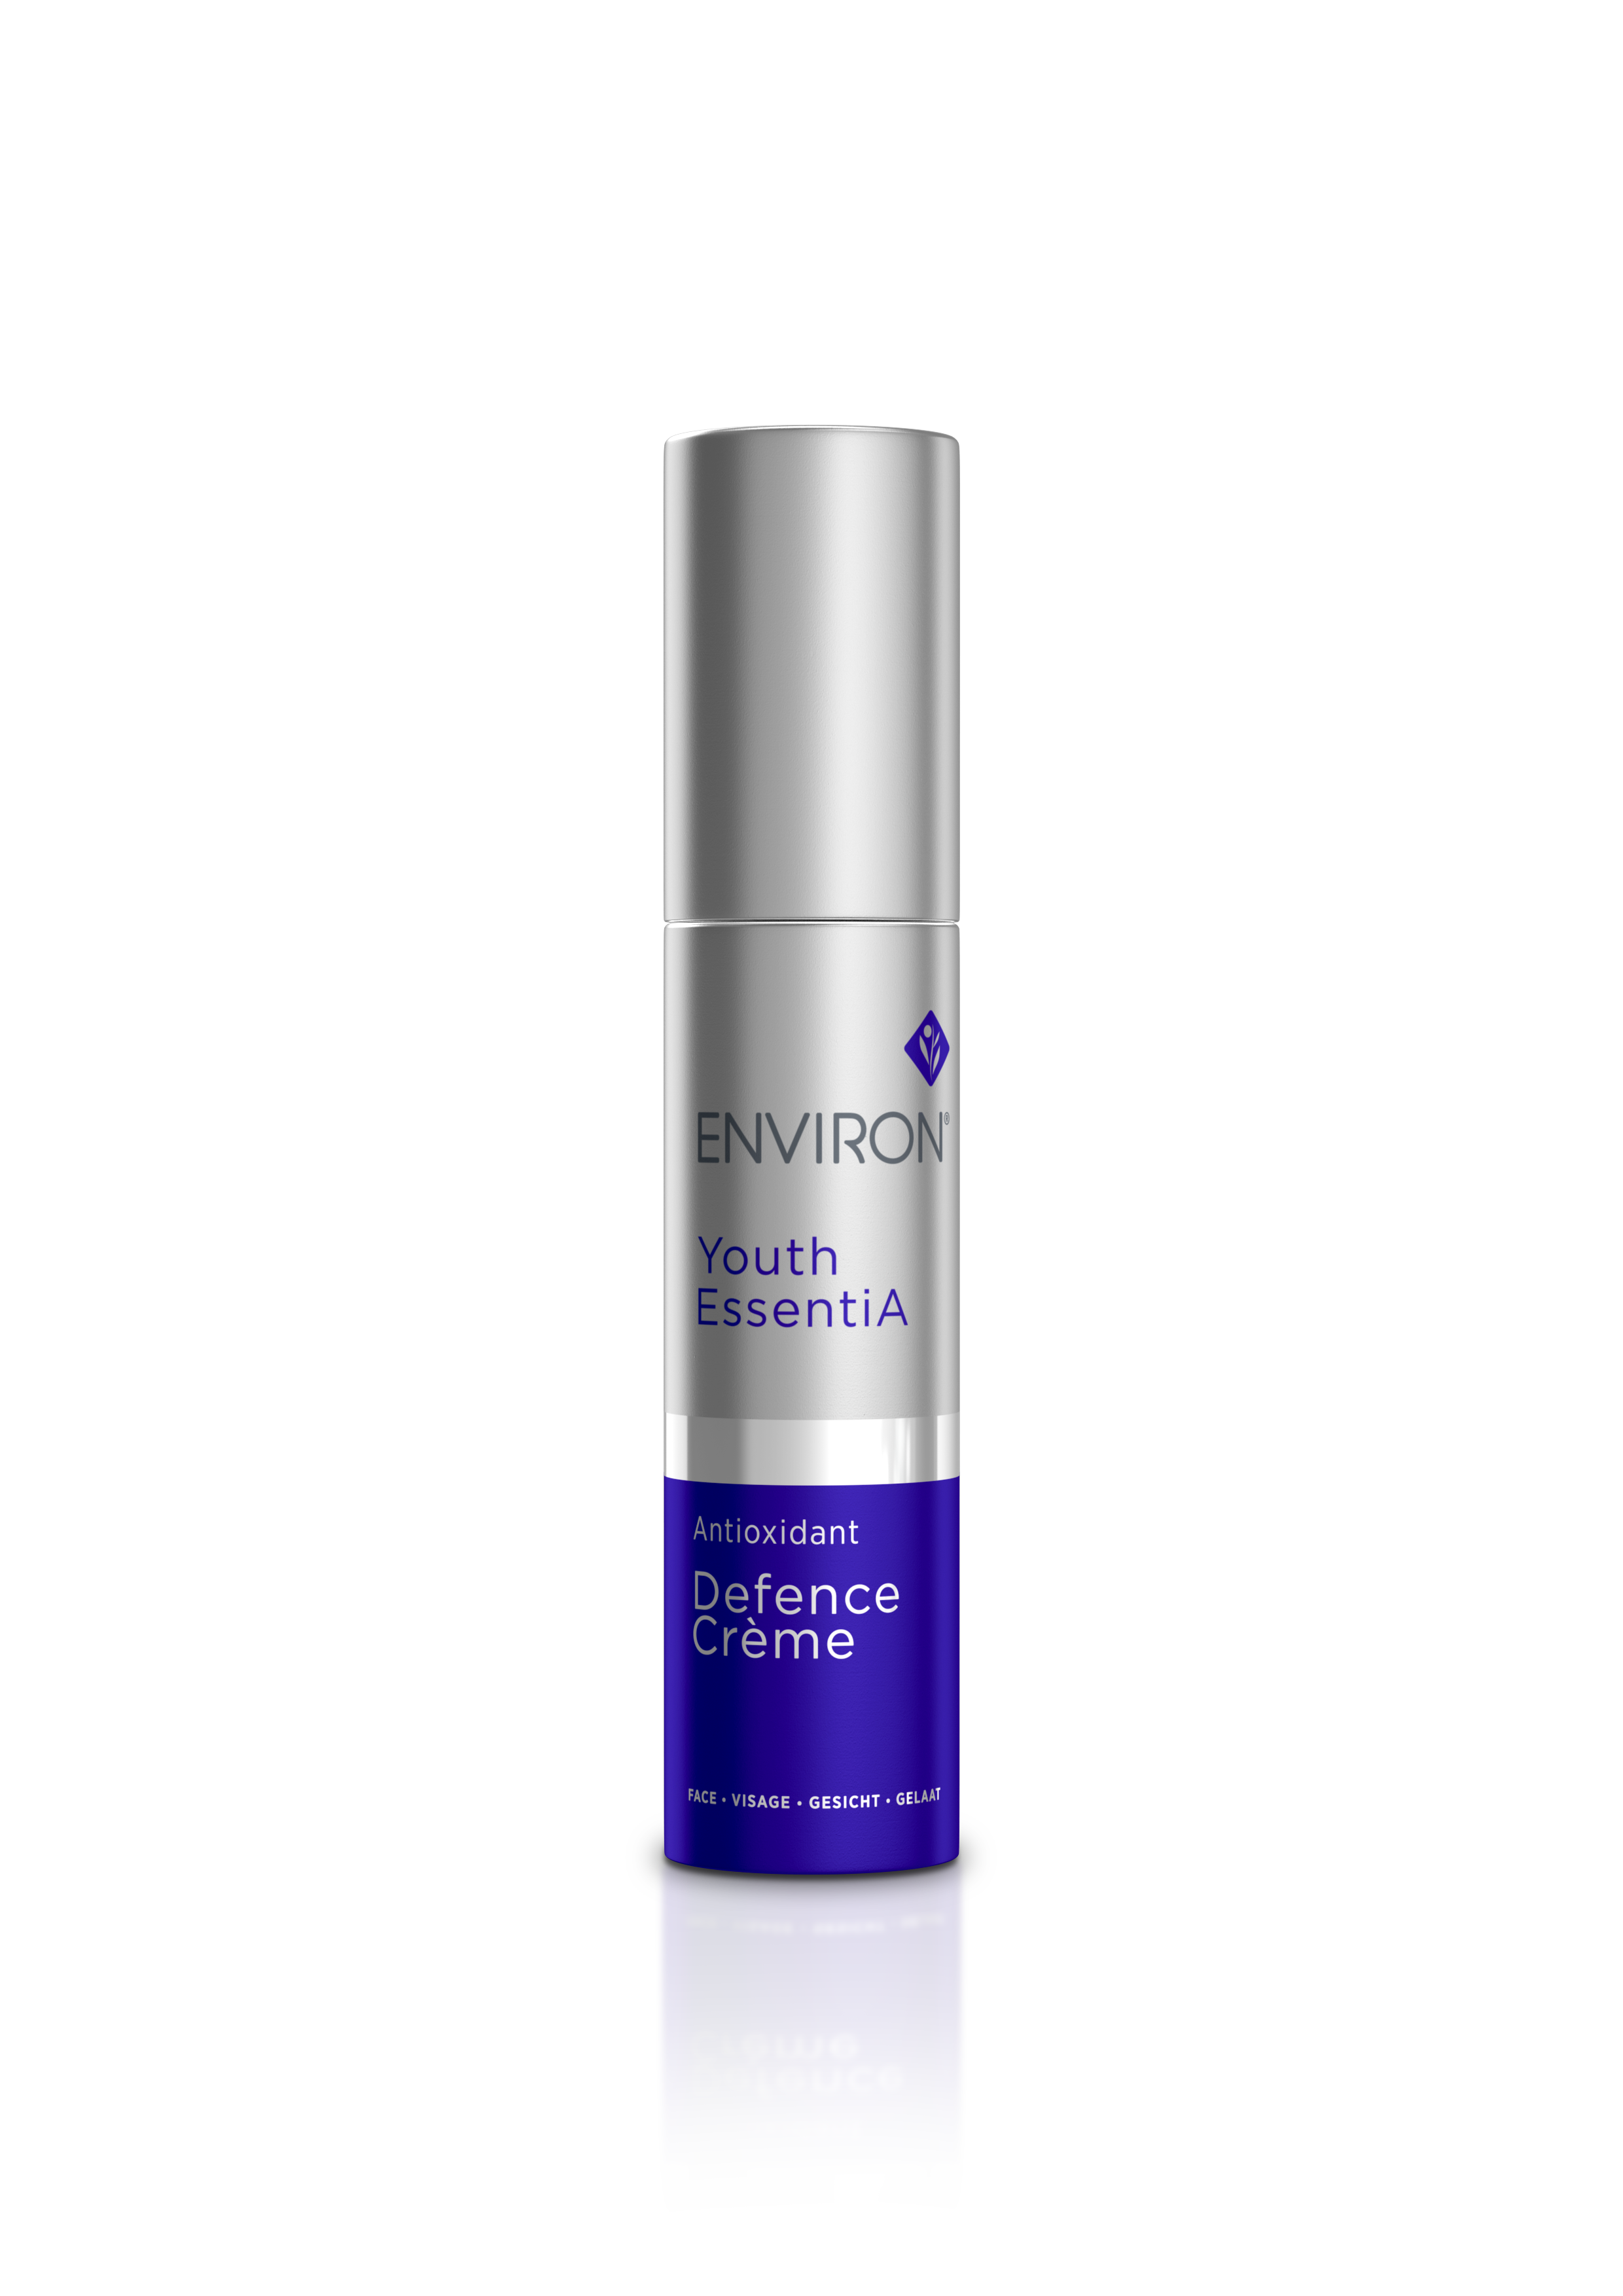 Youth Essentia Defence Creme